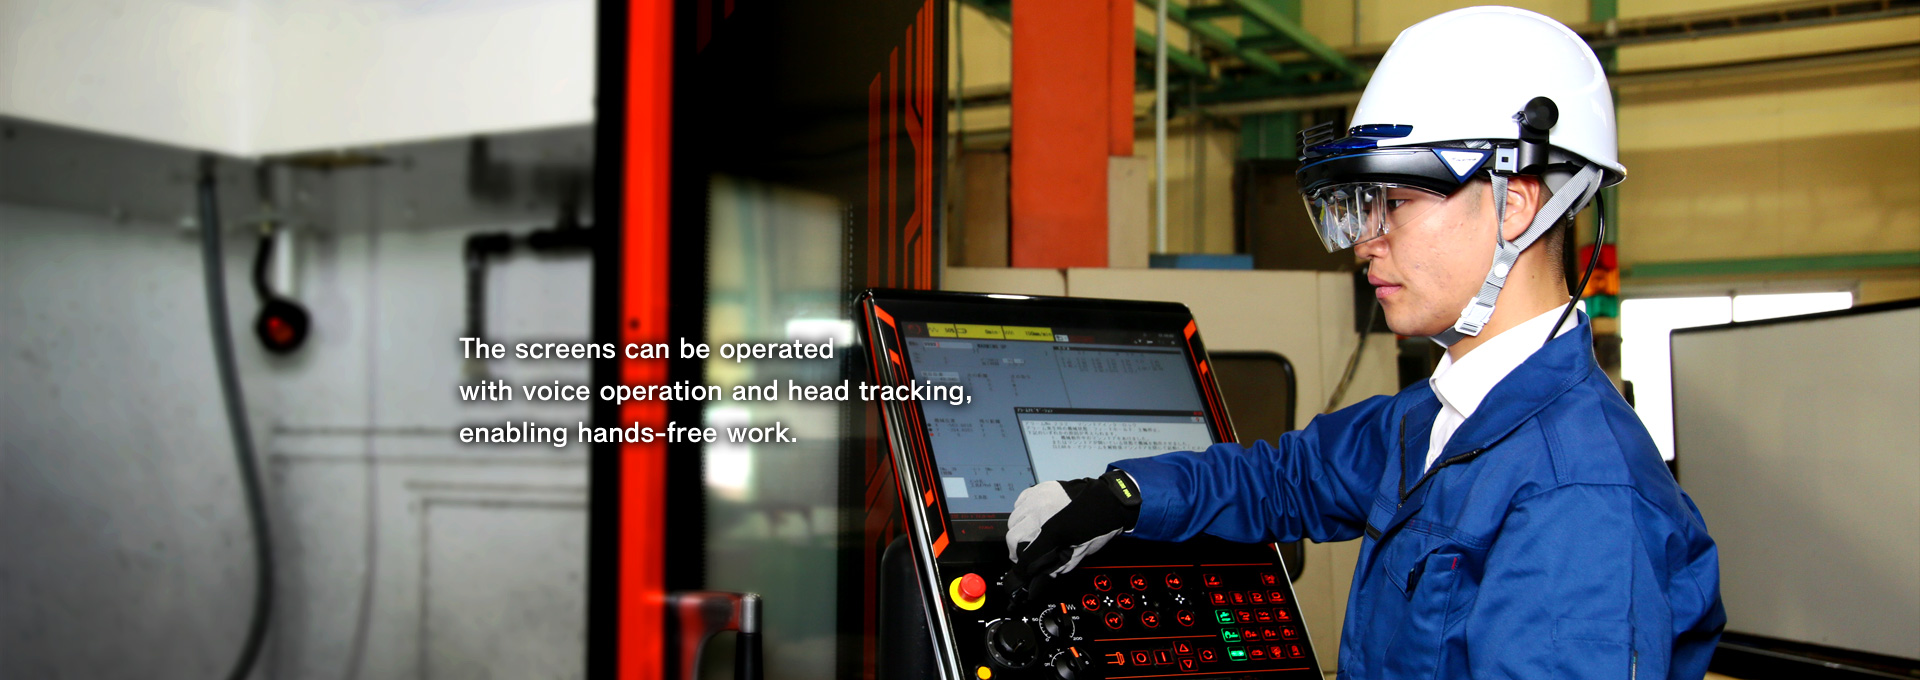 The screens can be operated with voice operation and head tracking,enabling hands-free work.